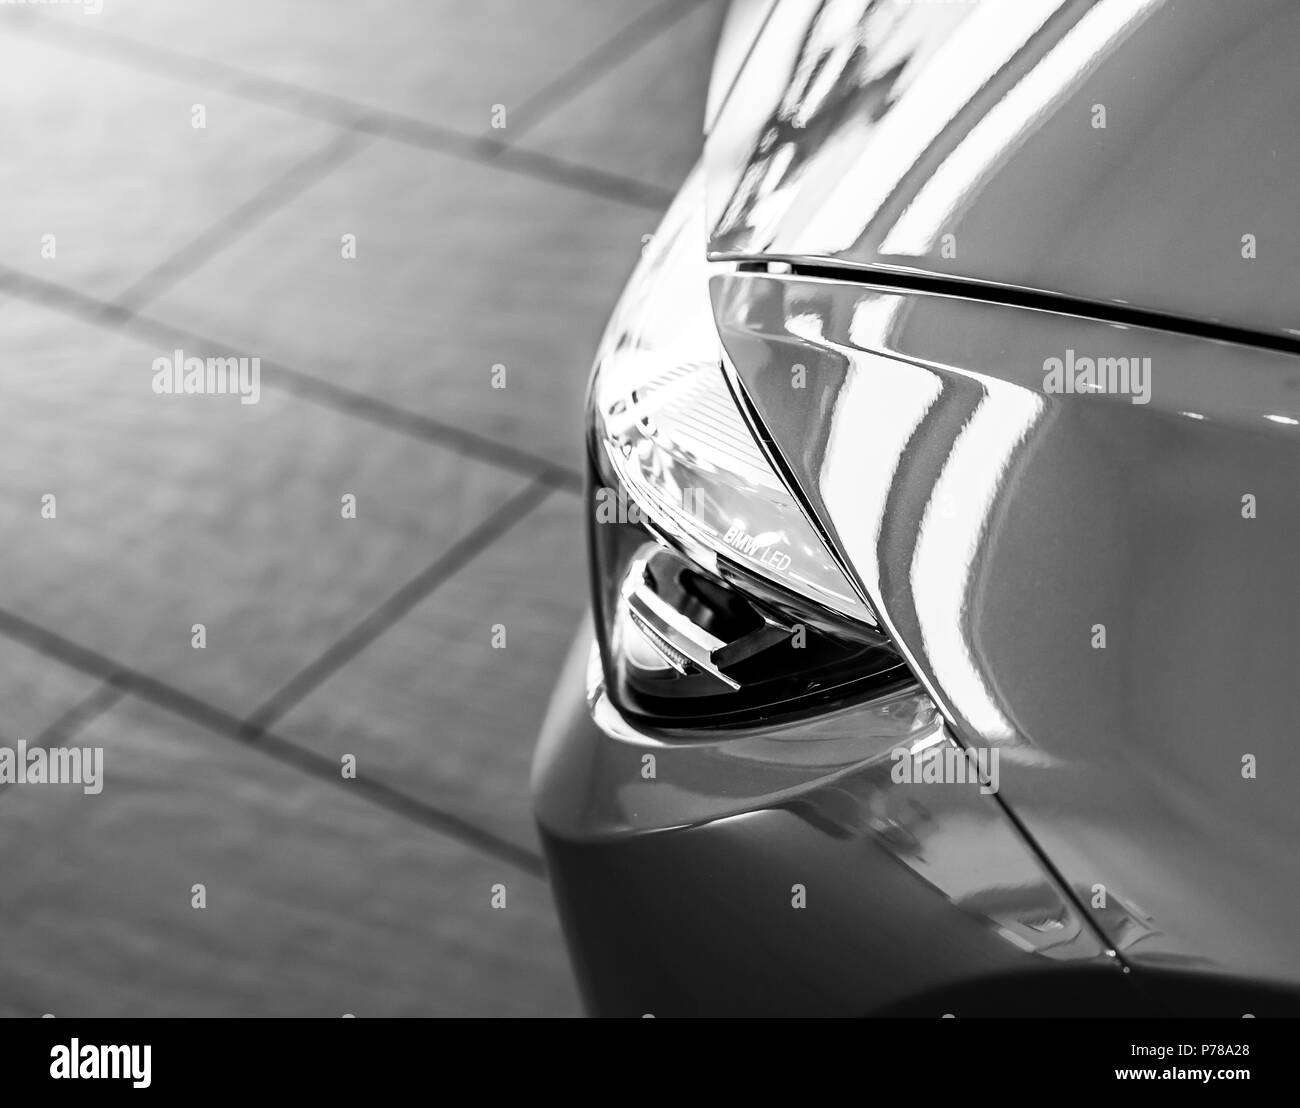 The headlight of a modern BMW sports car - Stock Image